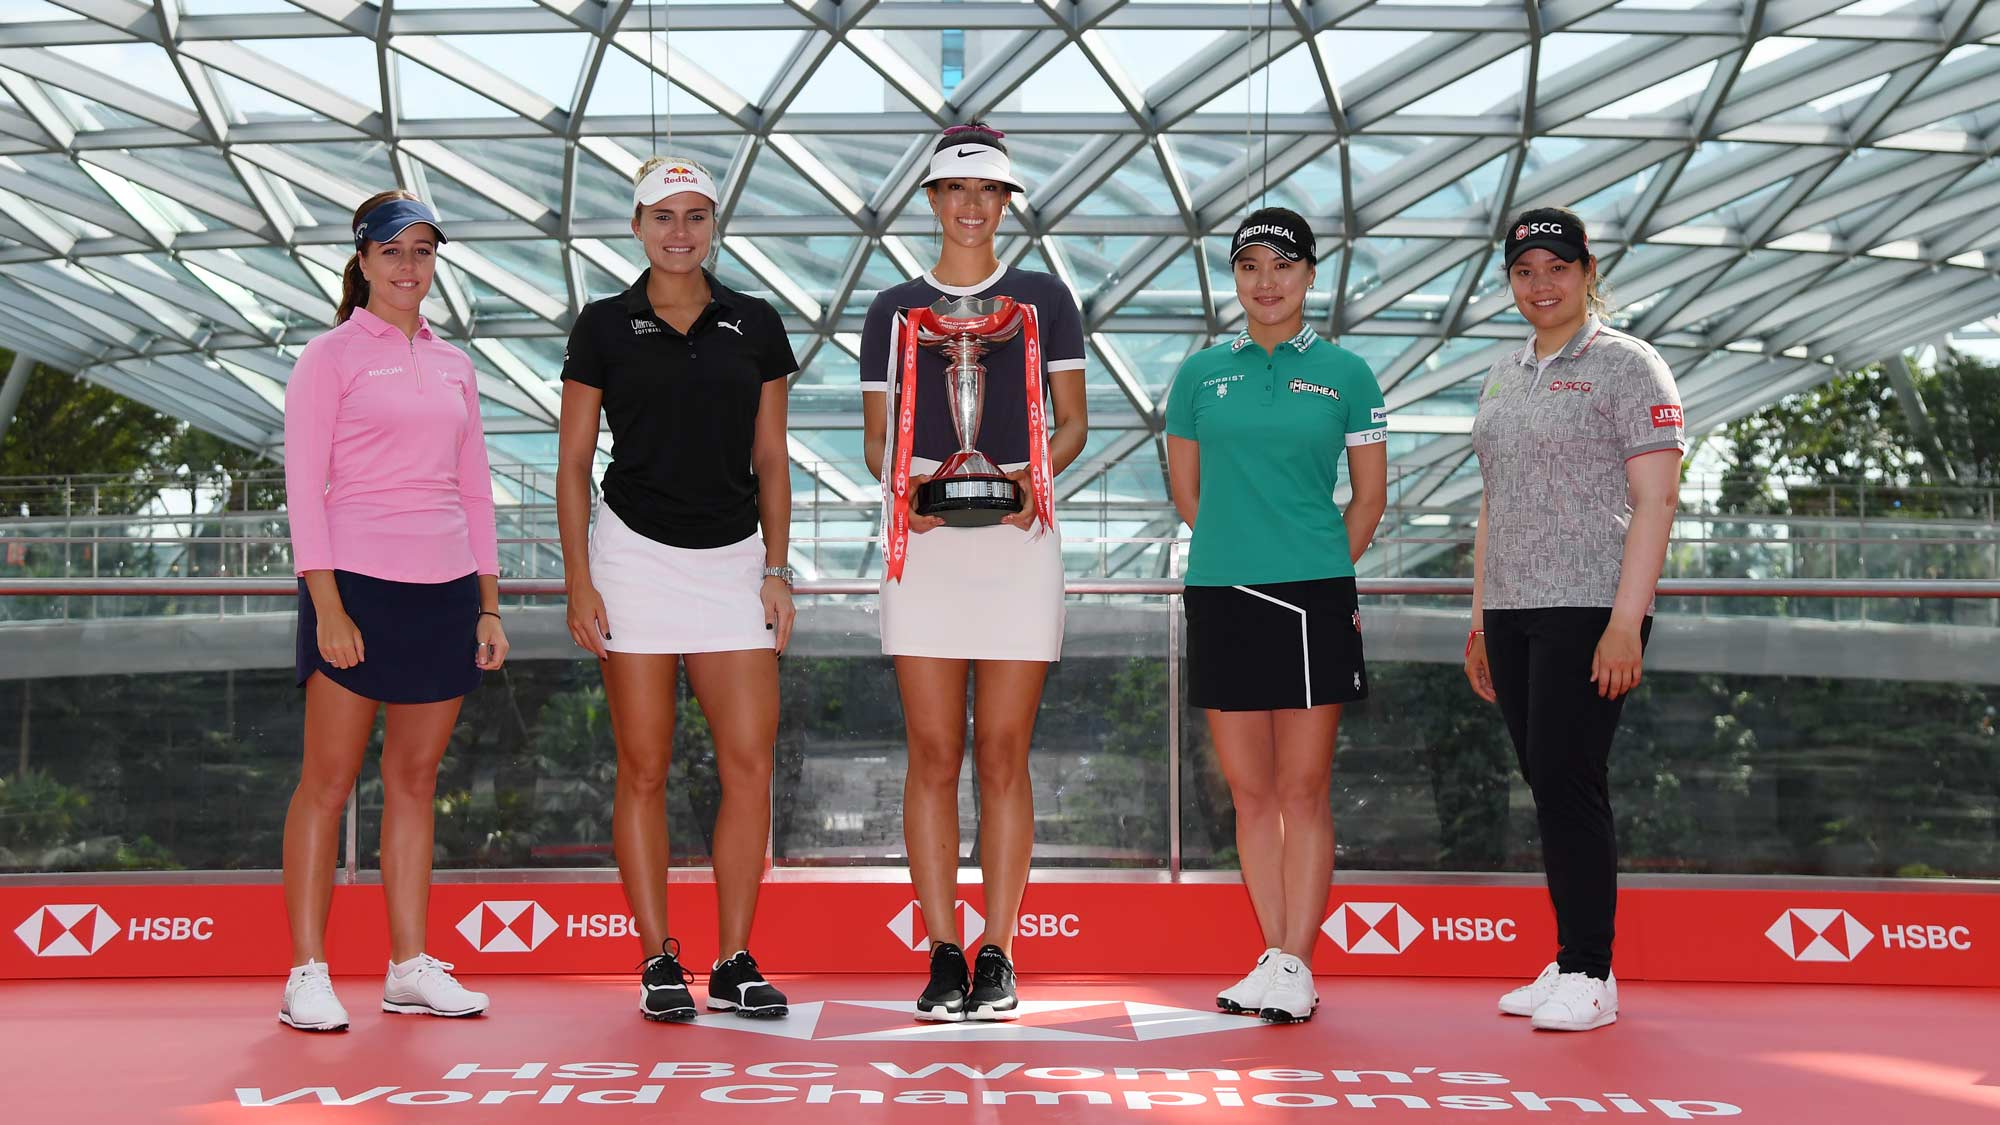 Georgia Hall of England, Lexi Thompson of the United States, Michelle Wie of United States, So Yeon Ryu of South Korea and Ariya Jutanugarn of Thailand pose at Jewel Changi Airport prior to the HSBC Women's World Champions on February 25, 2019 in Singapore.